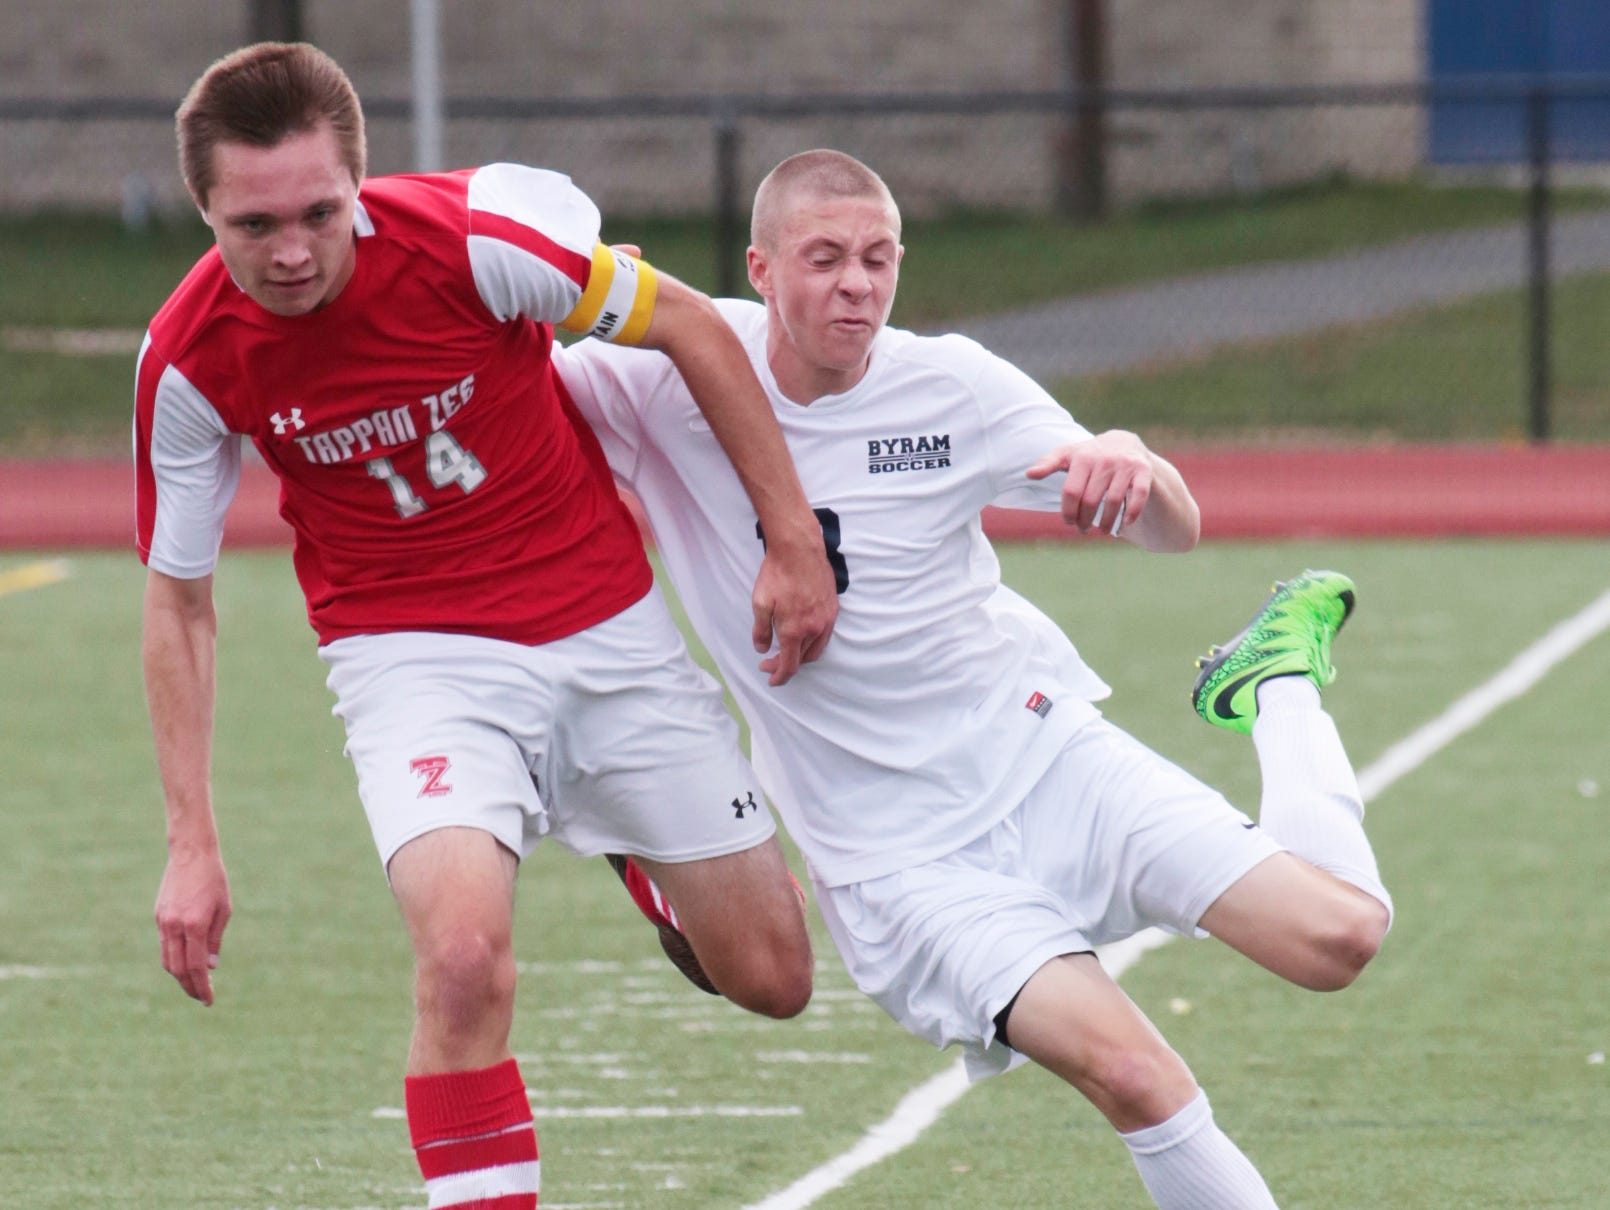 Tappan Zee's Lukas Puris (14) and Byrum Hills' David Noel (13) battle for possession of the ball during the game at Byrum Hills High School in Armonk on Oct. 29, 2015.